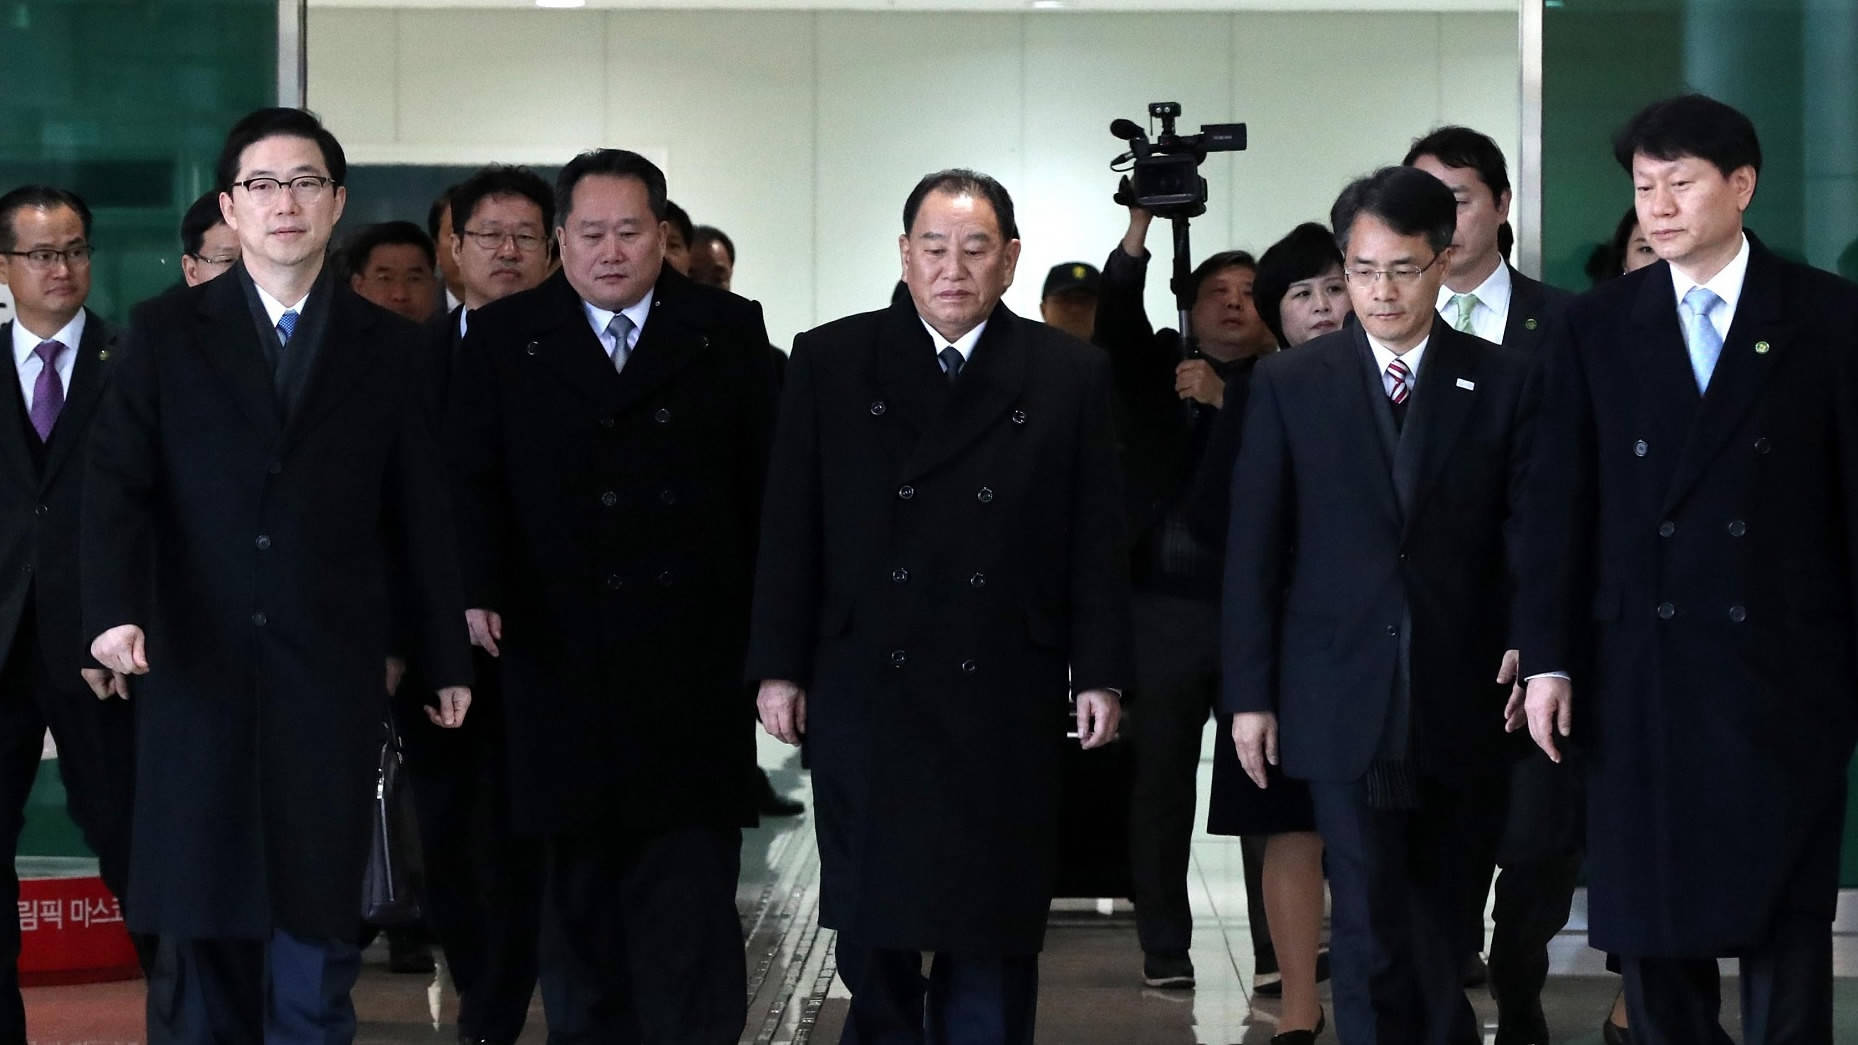 Chief DPRK delegate says doors open for talks with US